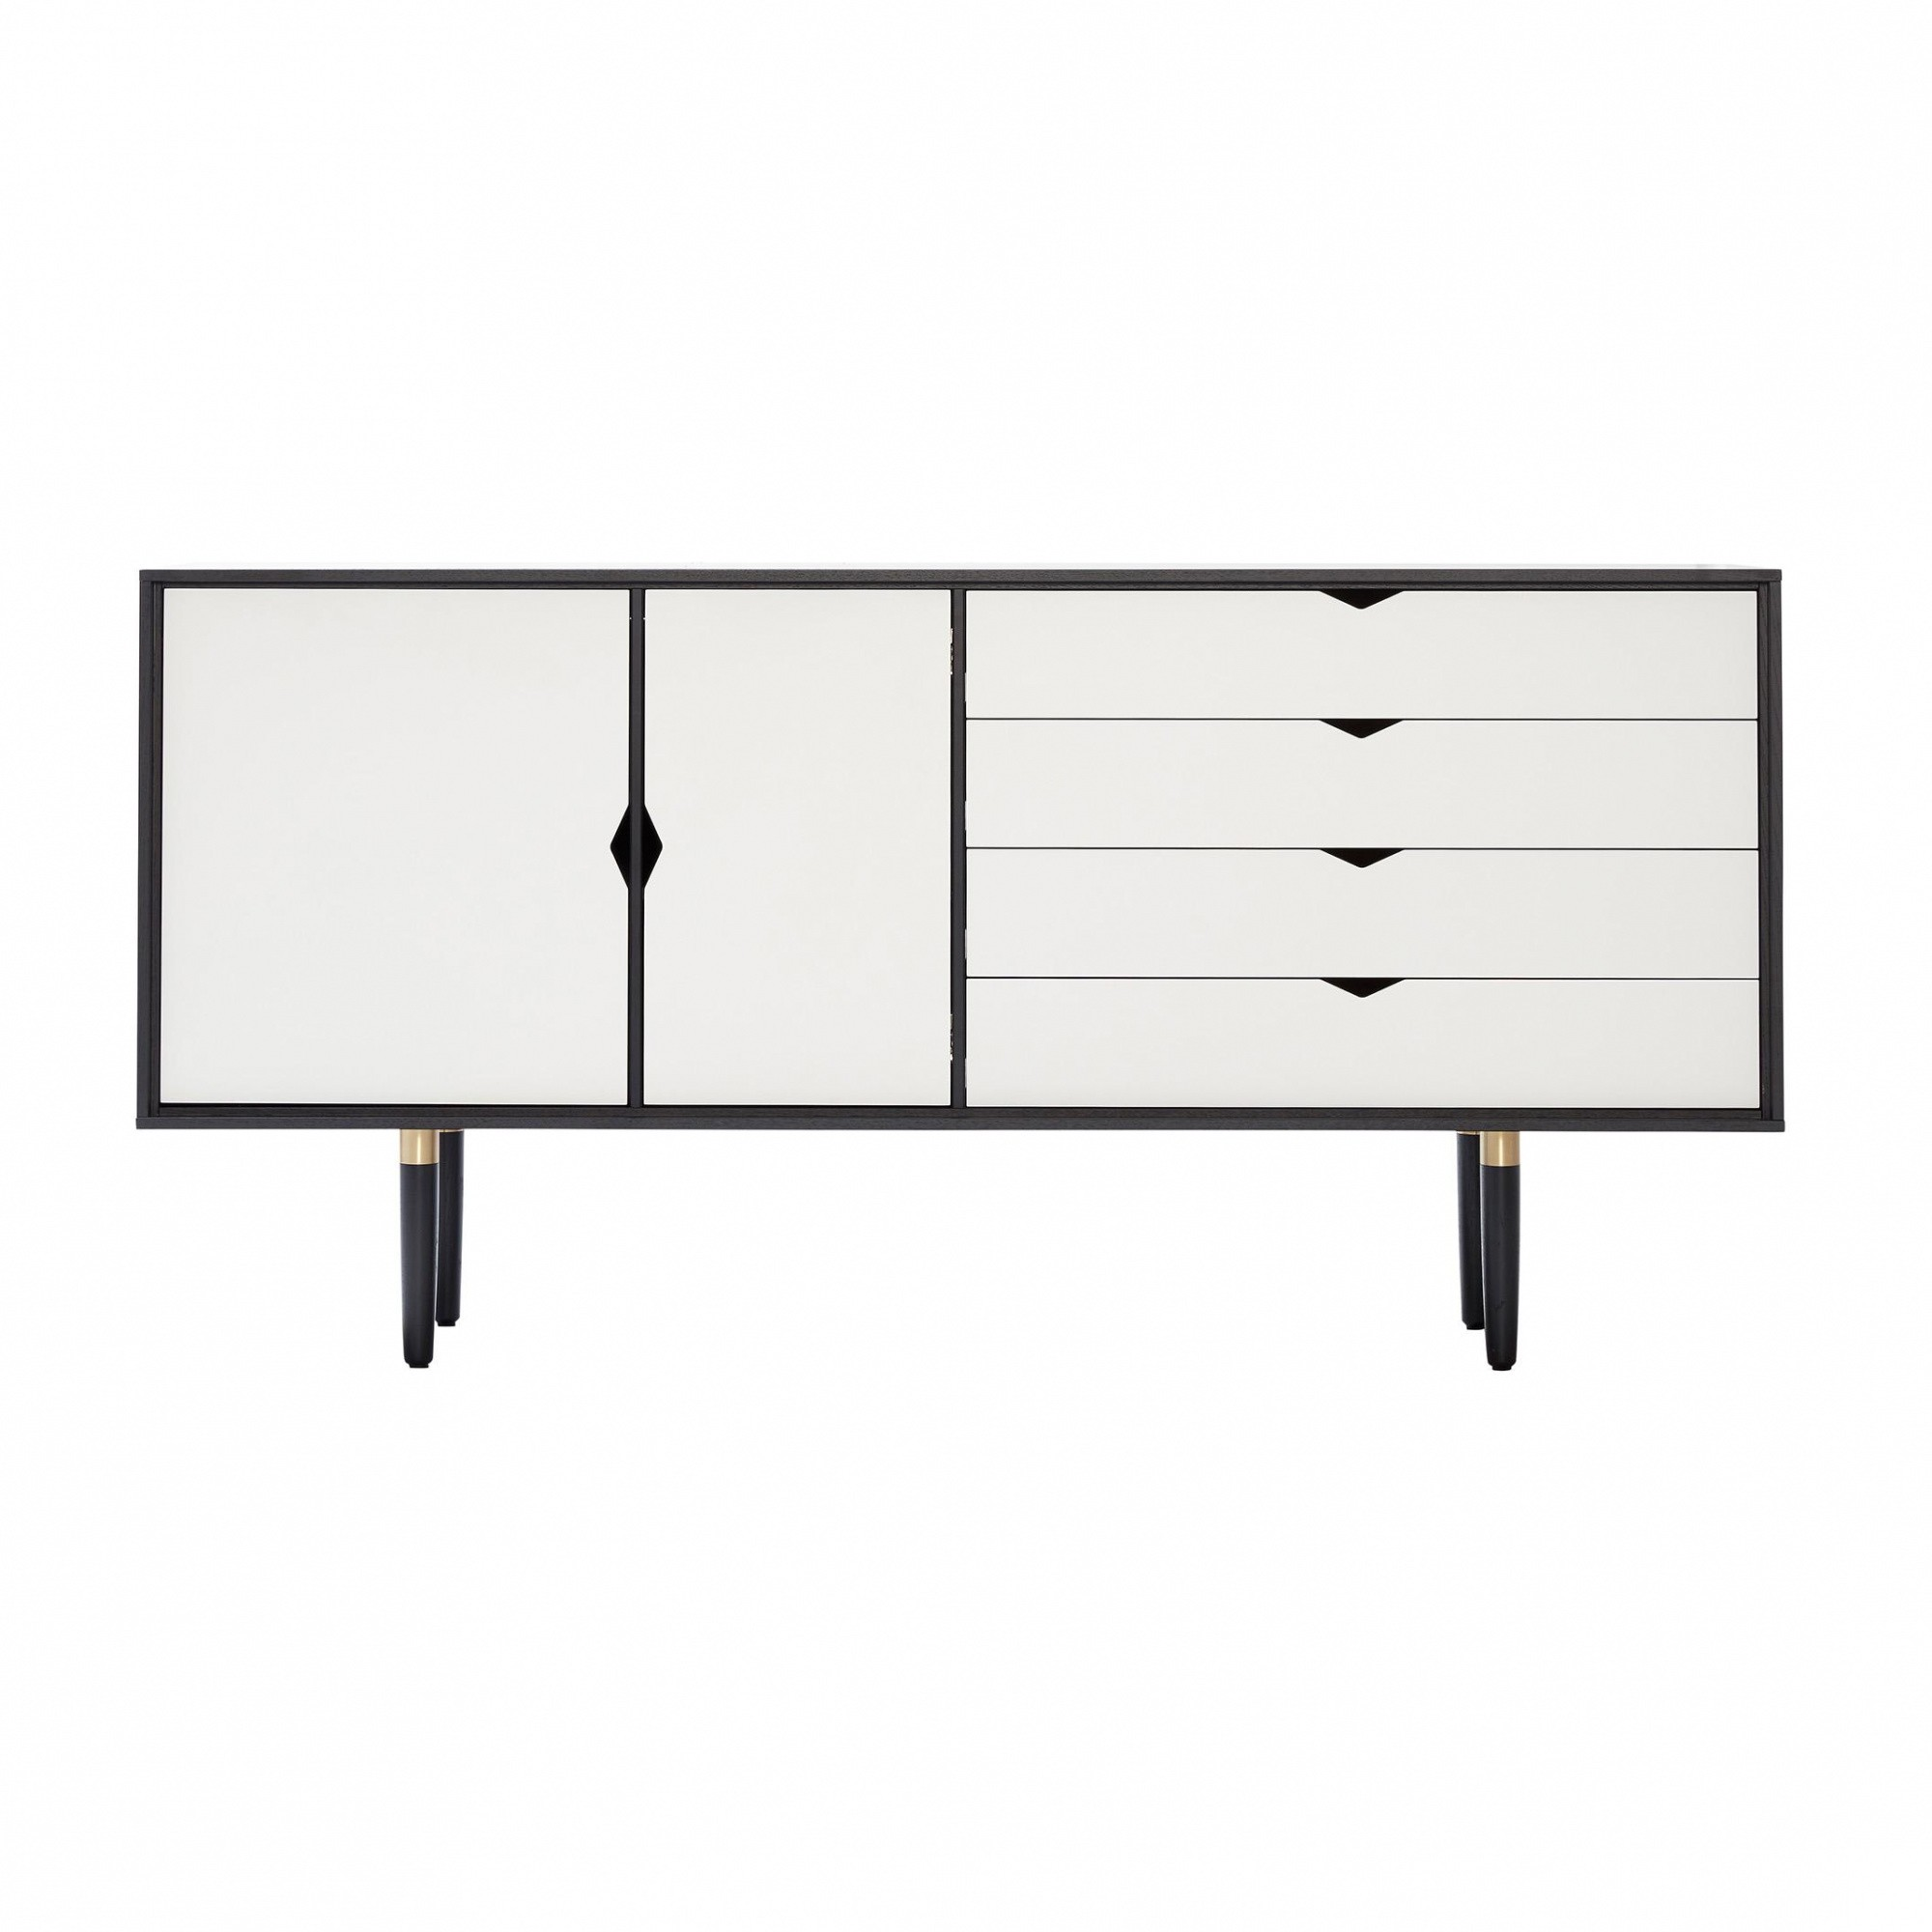 Sideboard Weiß Andersen Furniture S6 Sideboard White Fronts